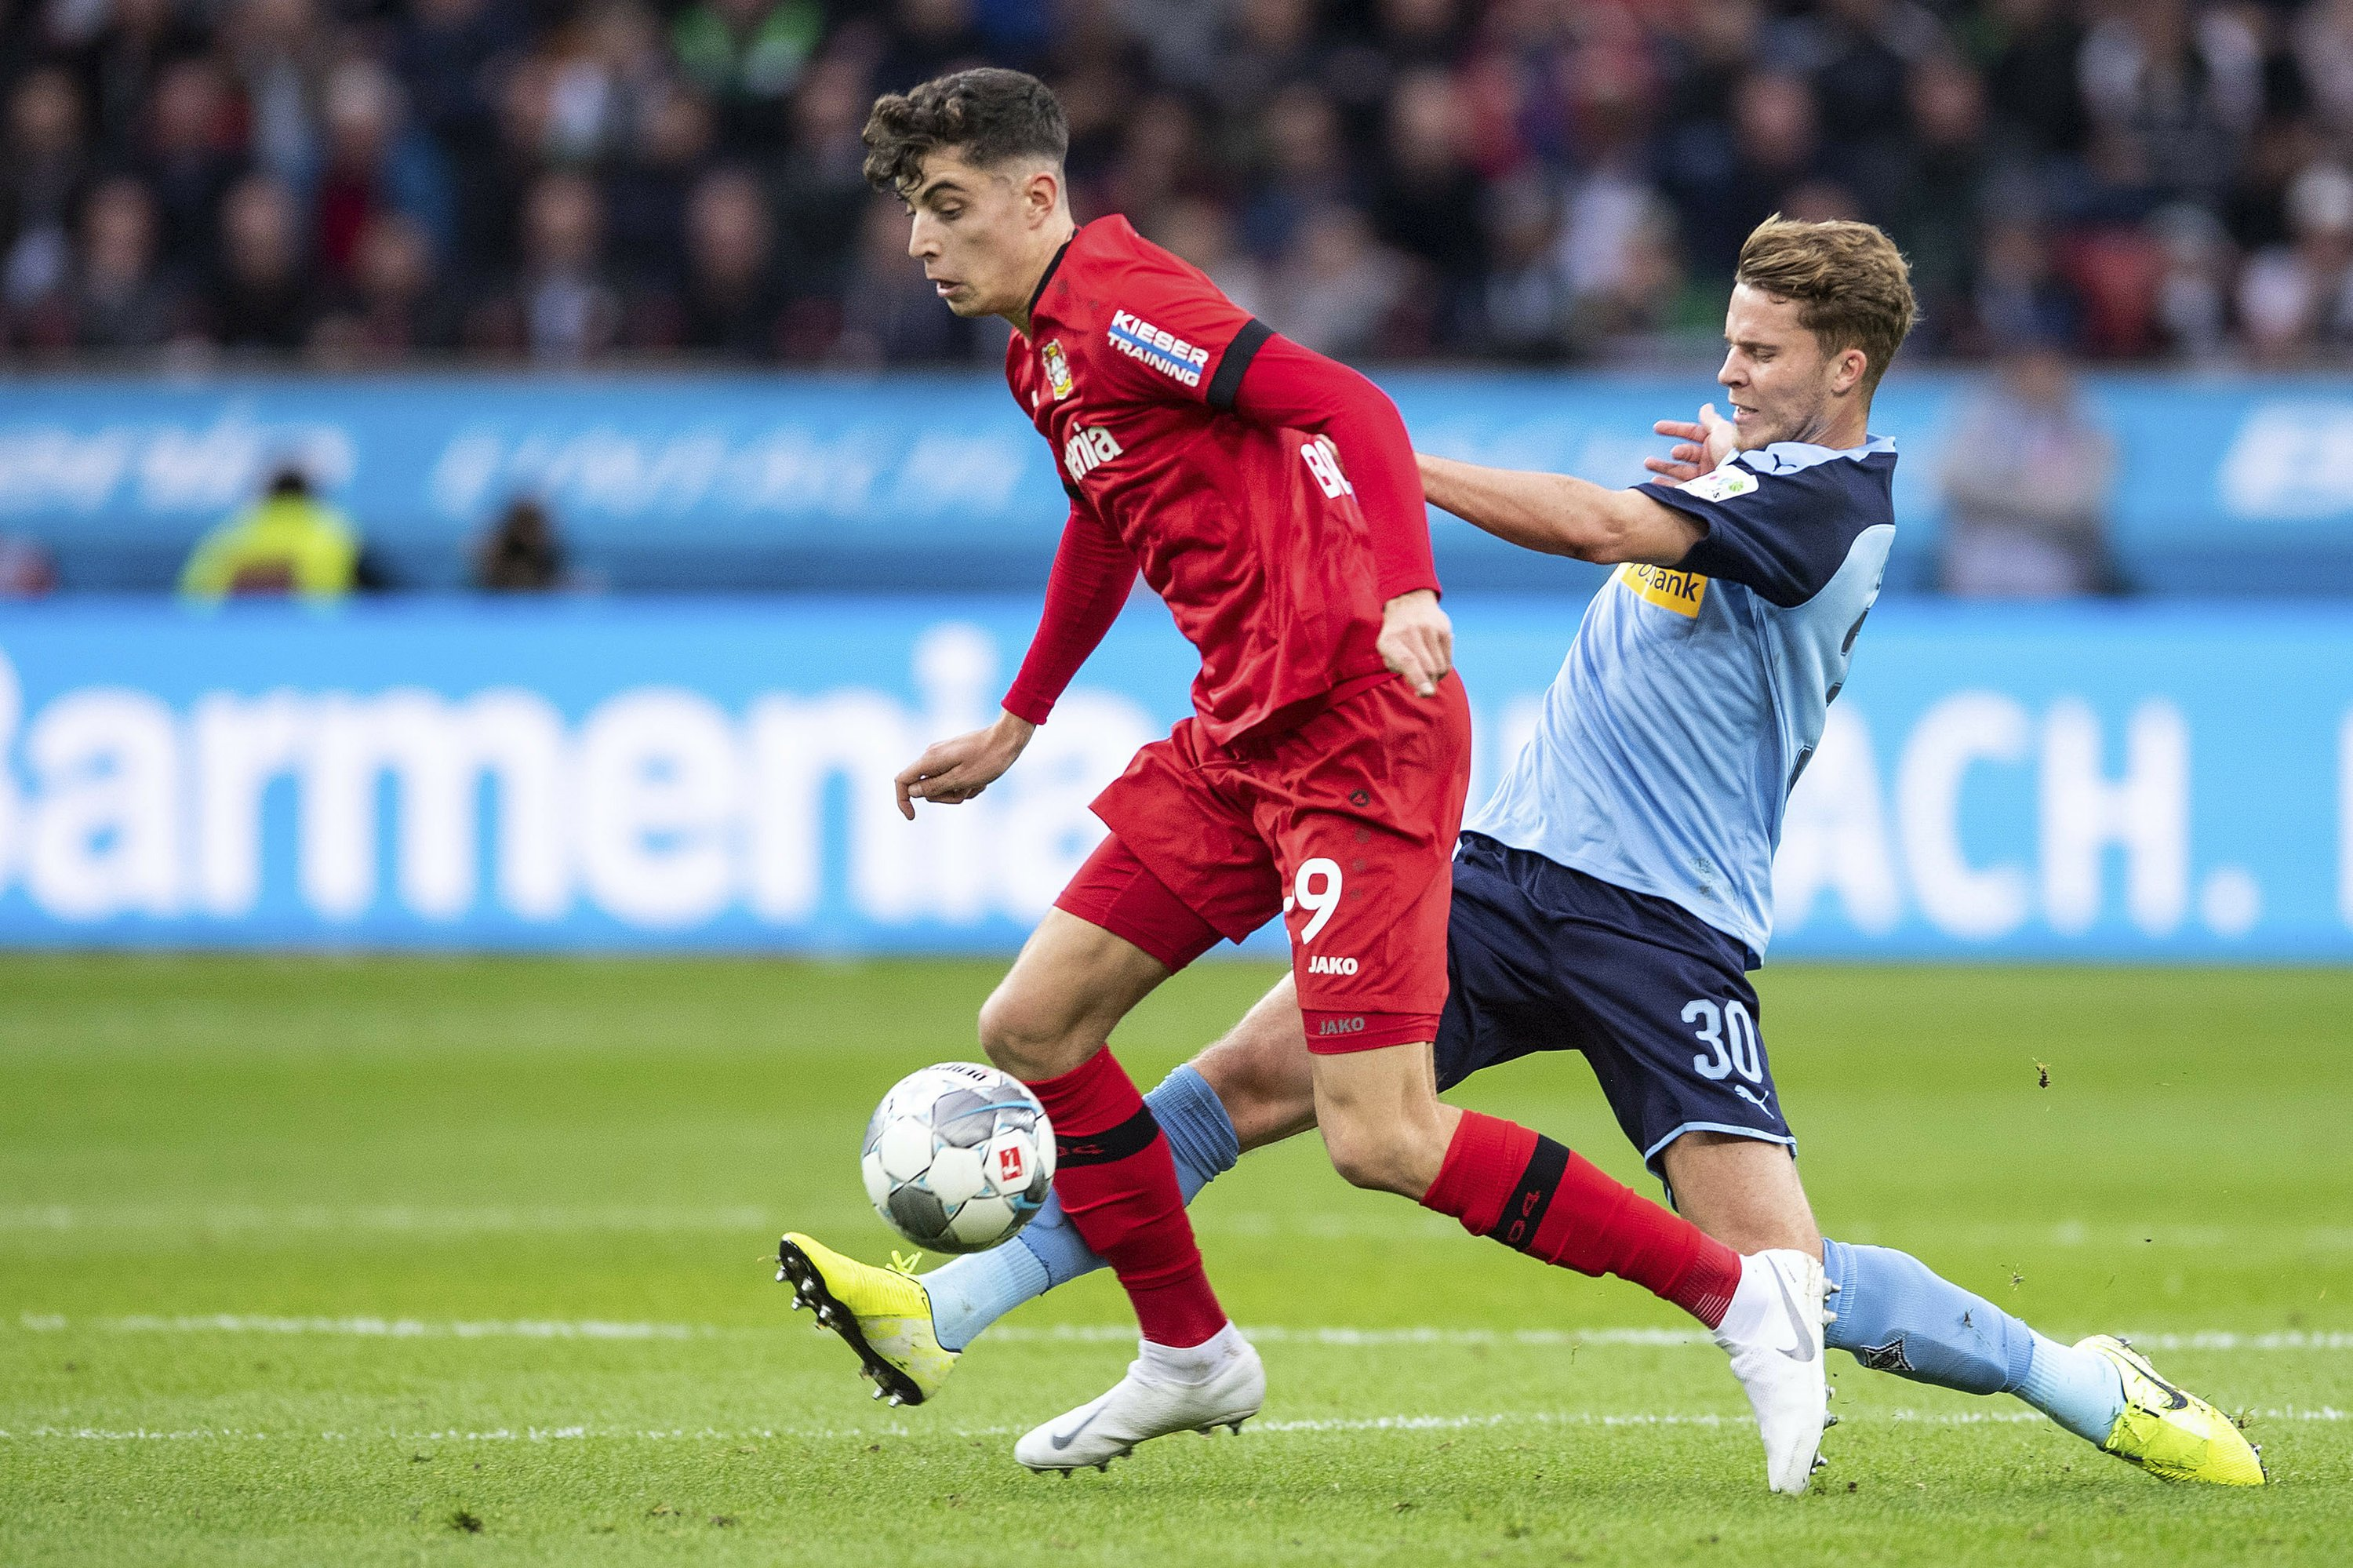 Havertz dropped from Germany squad because of injury